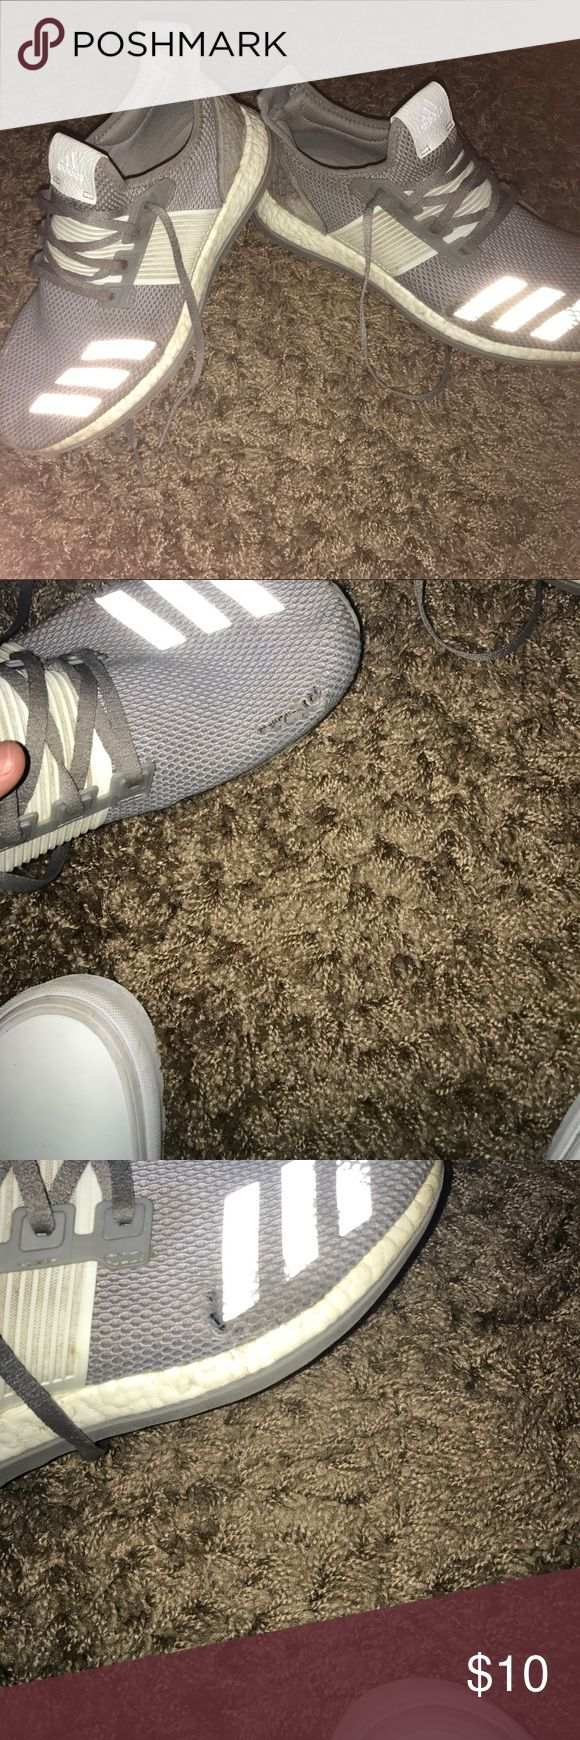 Adidas pure boost zg Great shoes in a worn down condition Shoes Sneakers